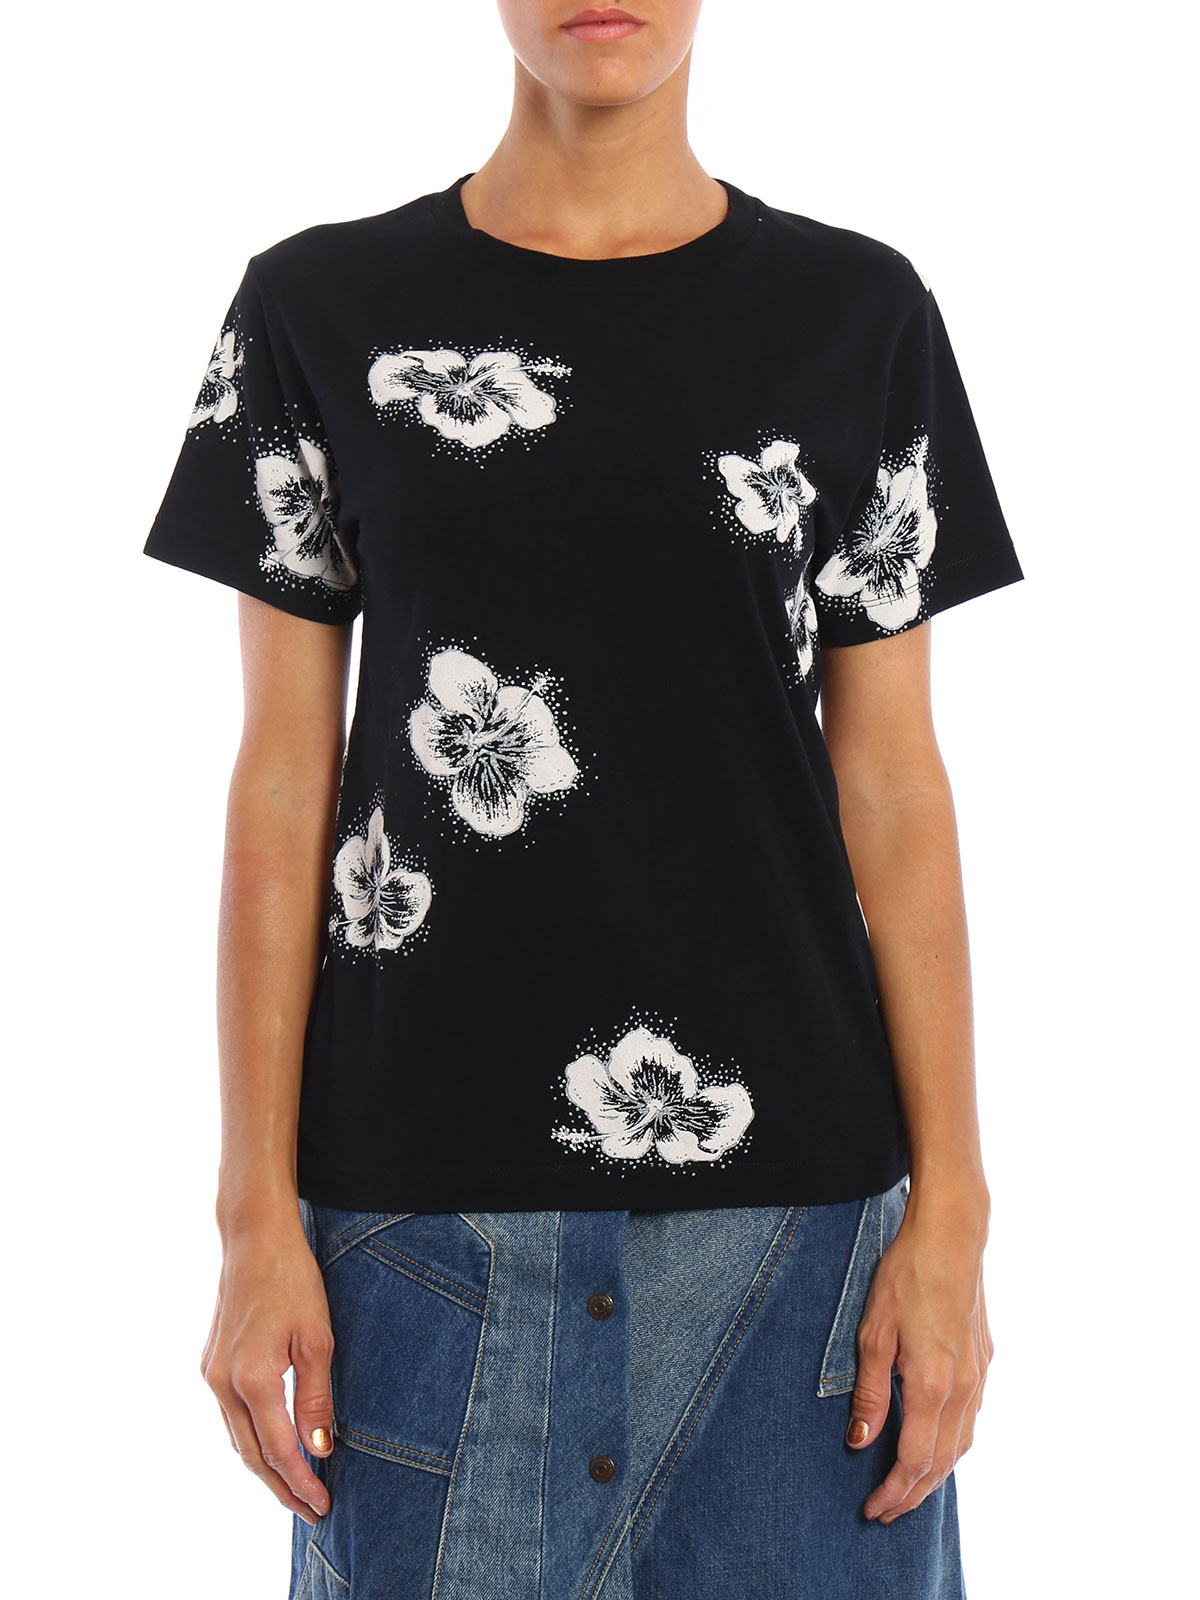 Glittery flower printed t shirt by saint laurent t for T shirt printers online